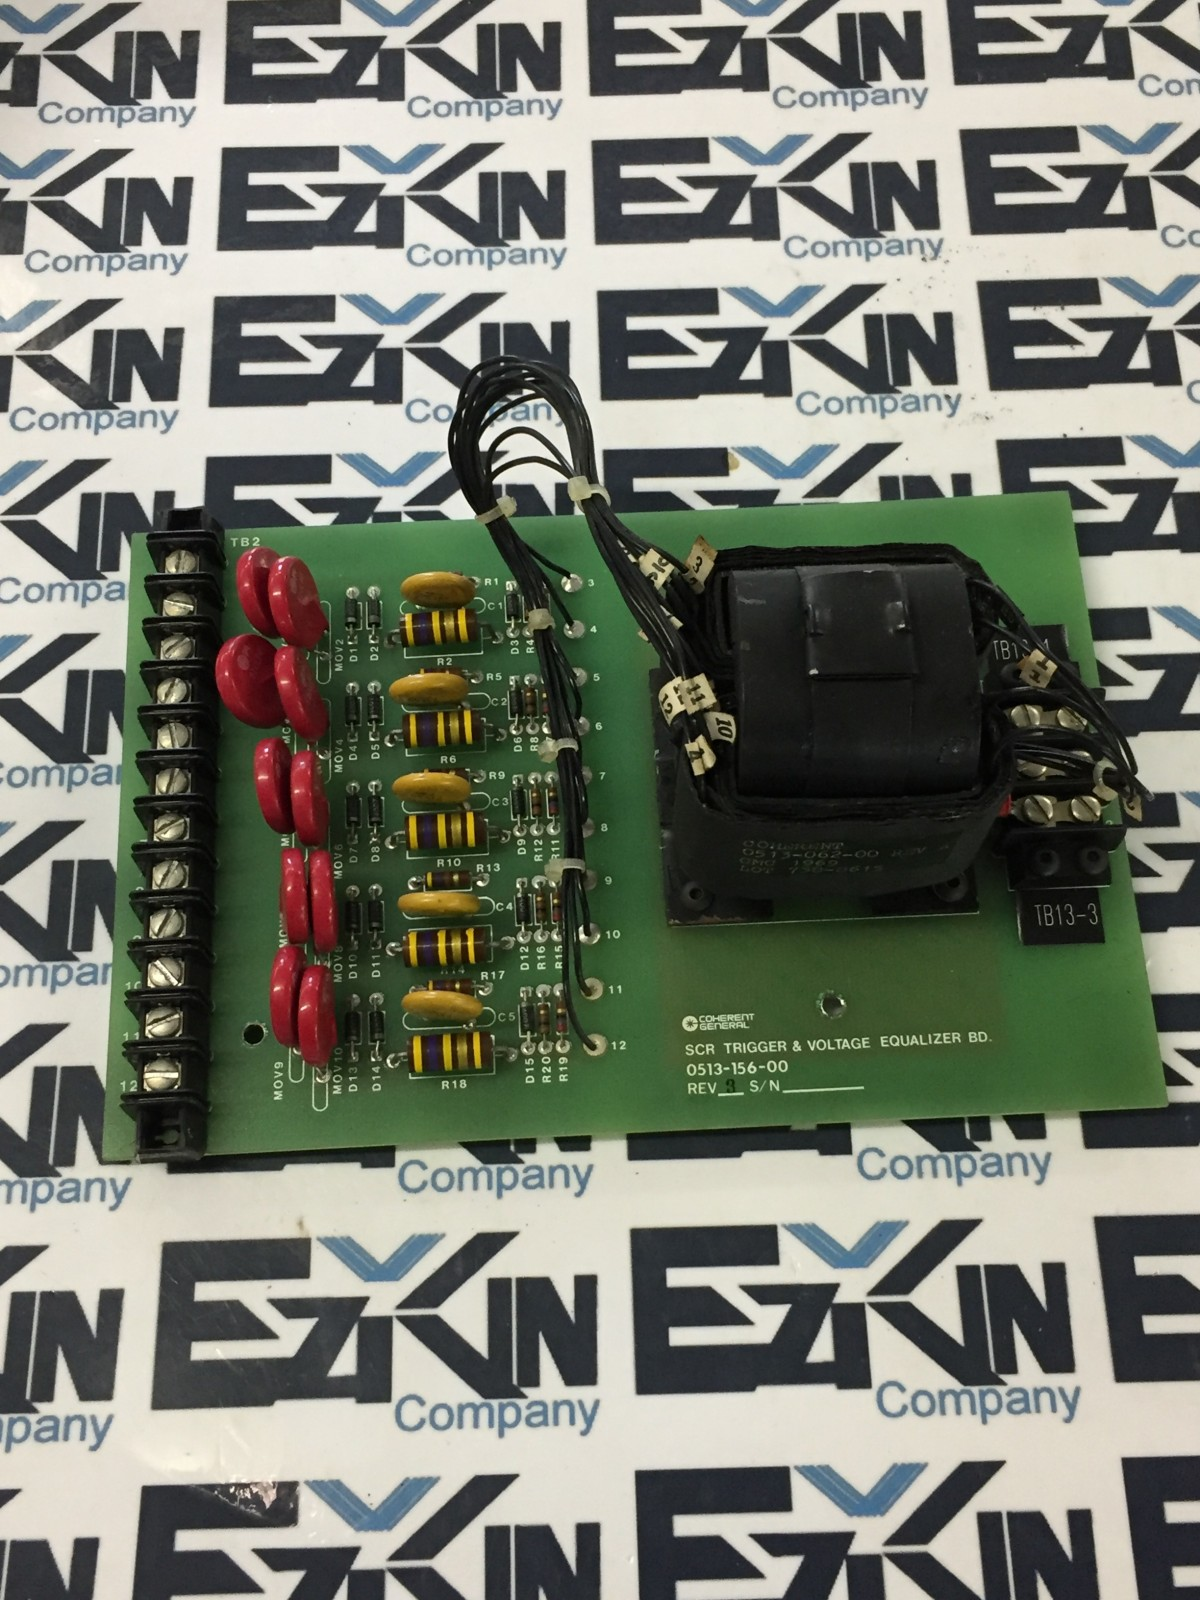 Coherent General SCR Trigger & Voltage Equalizer board 0513-156-00 rev.3